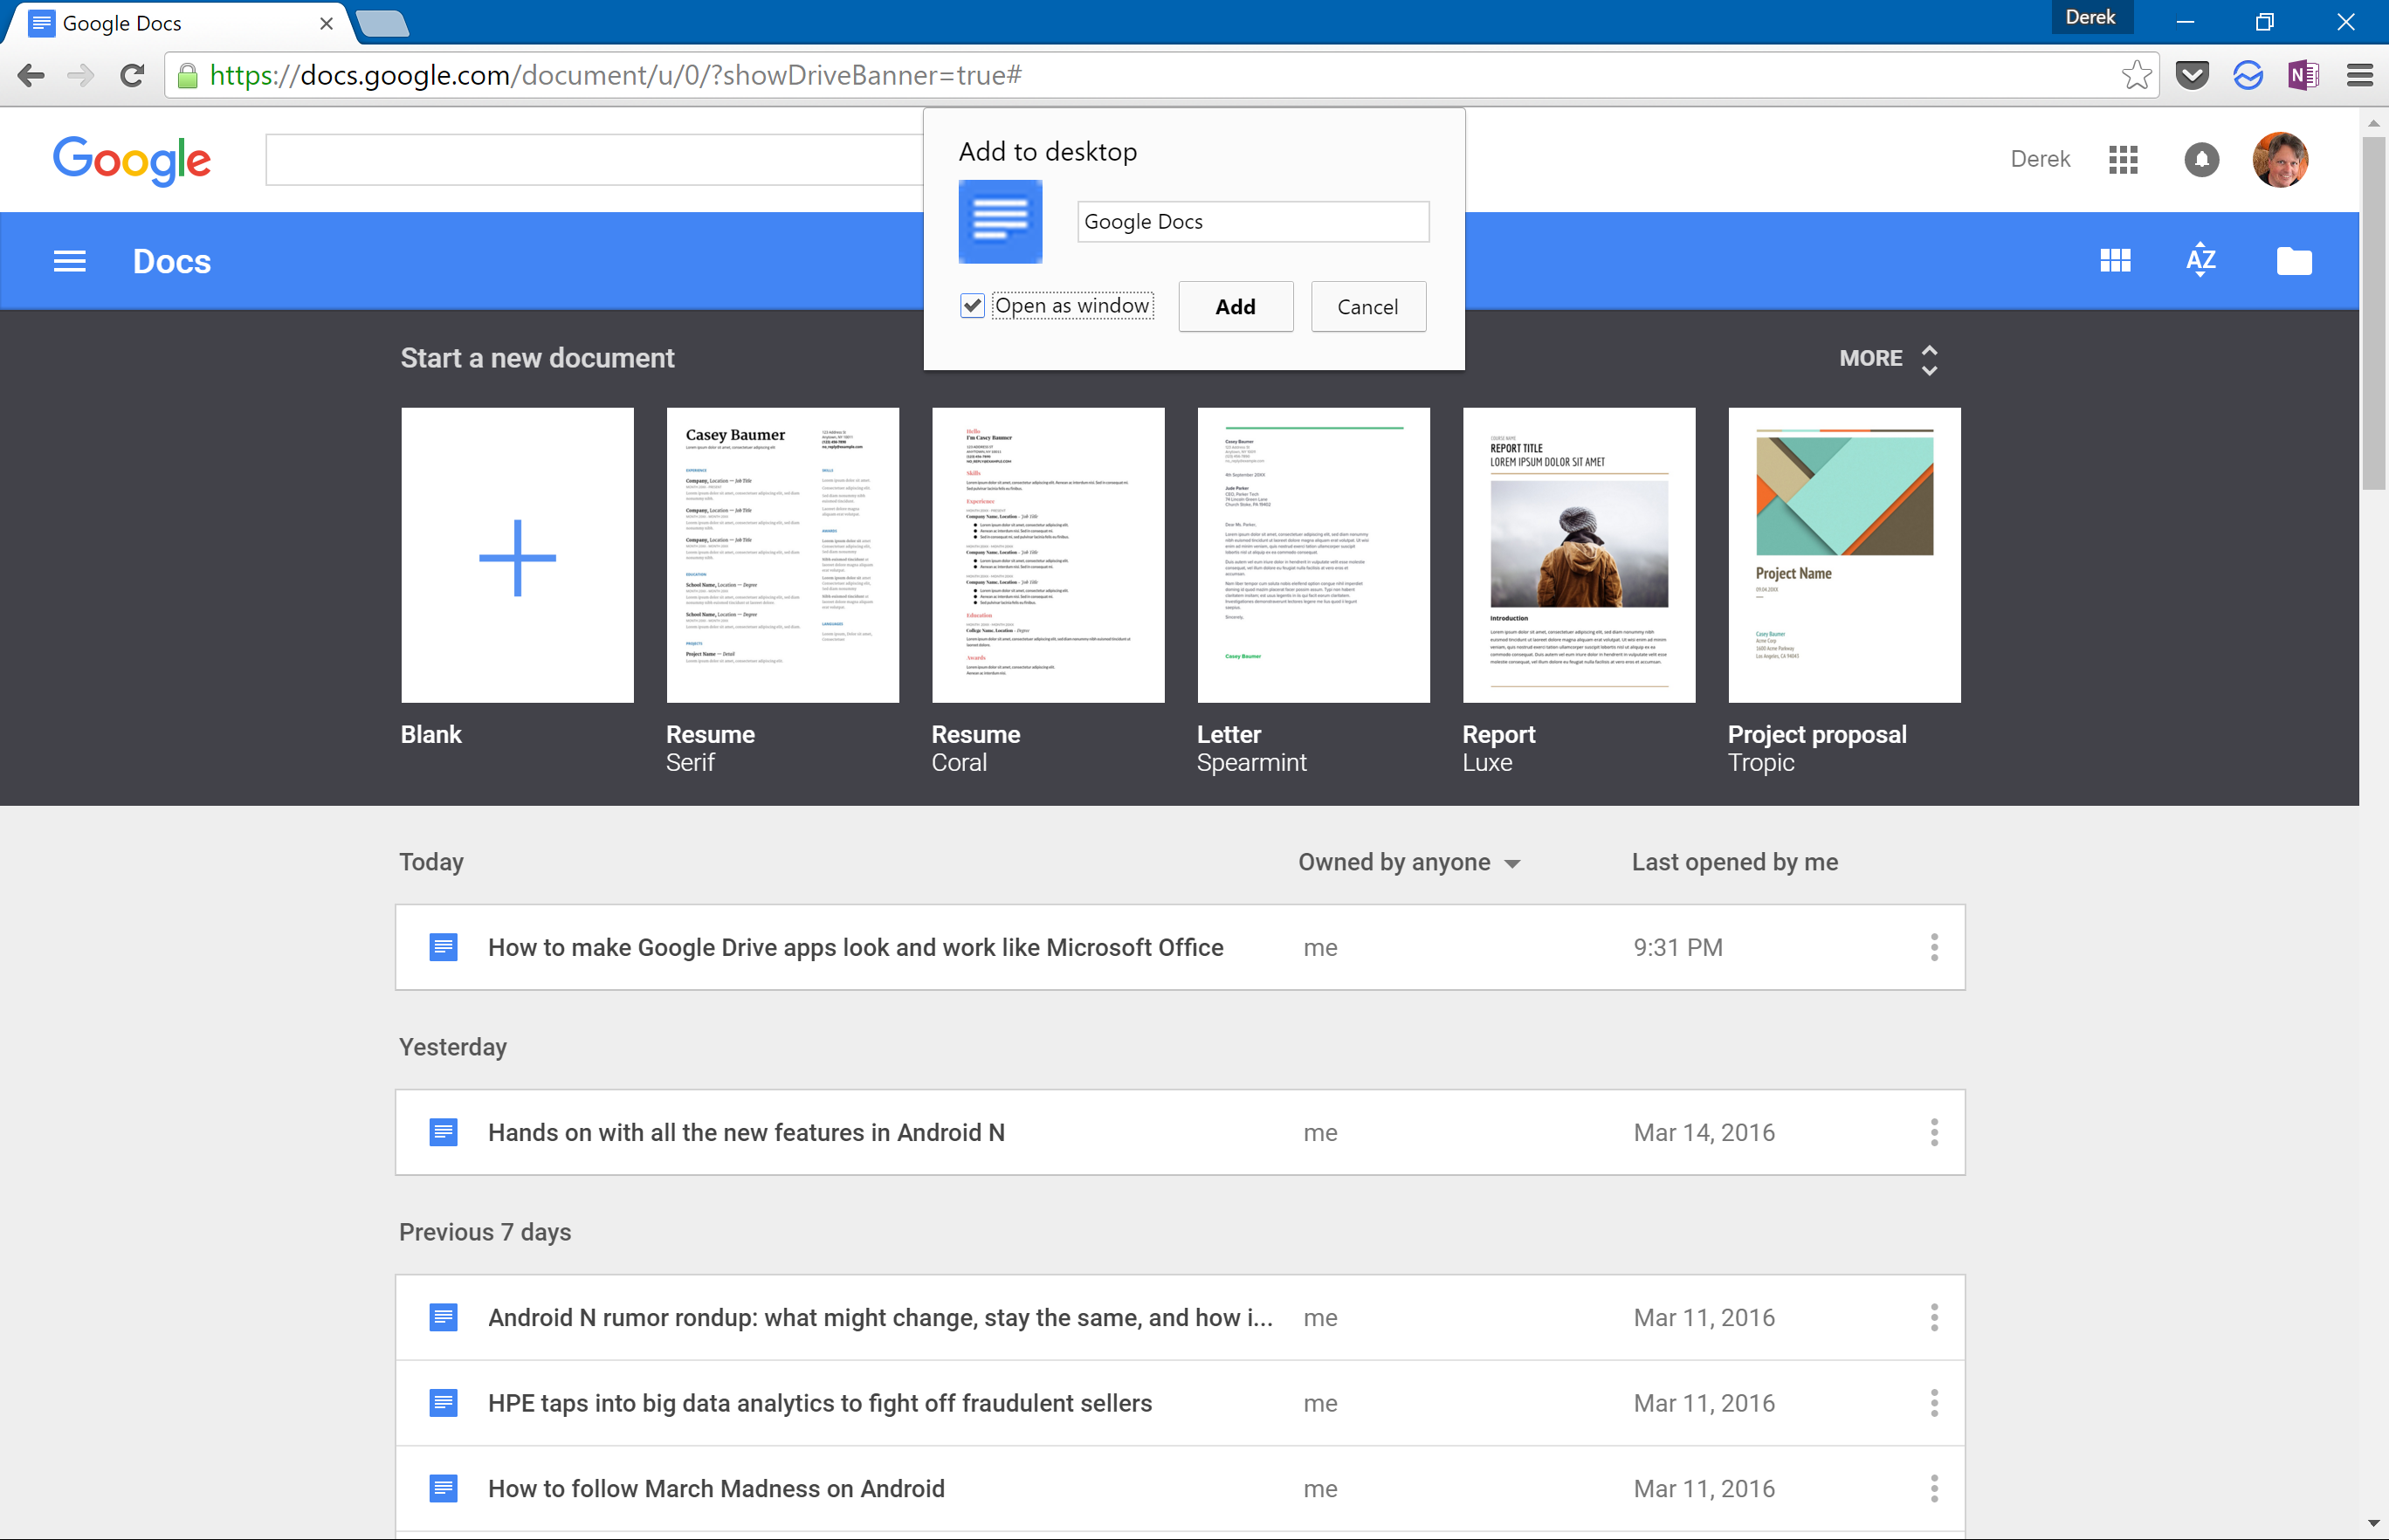 How to make Google Drive apps look and work more like